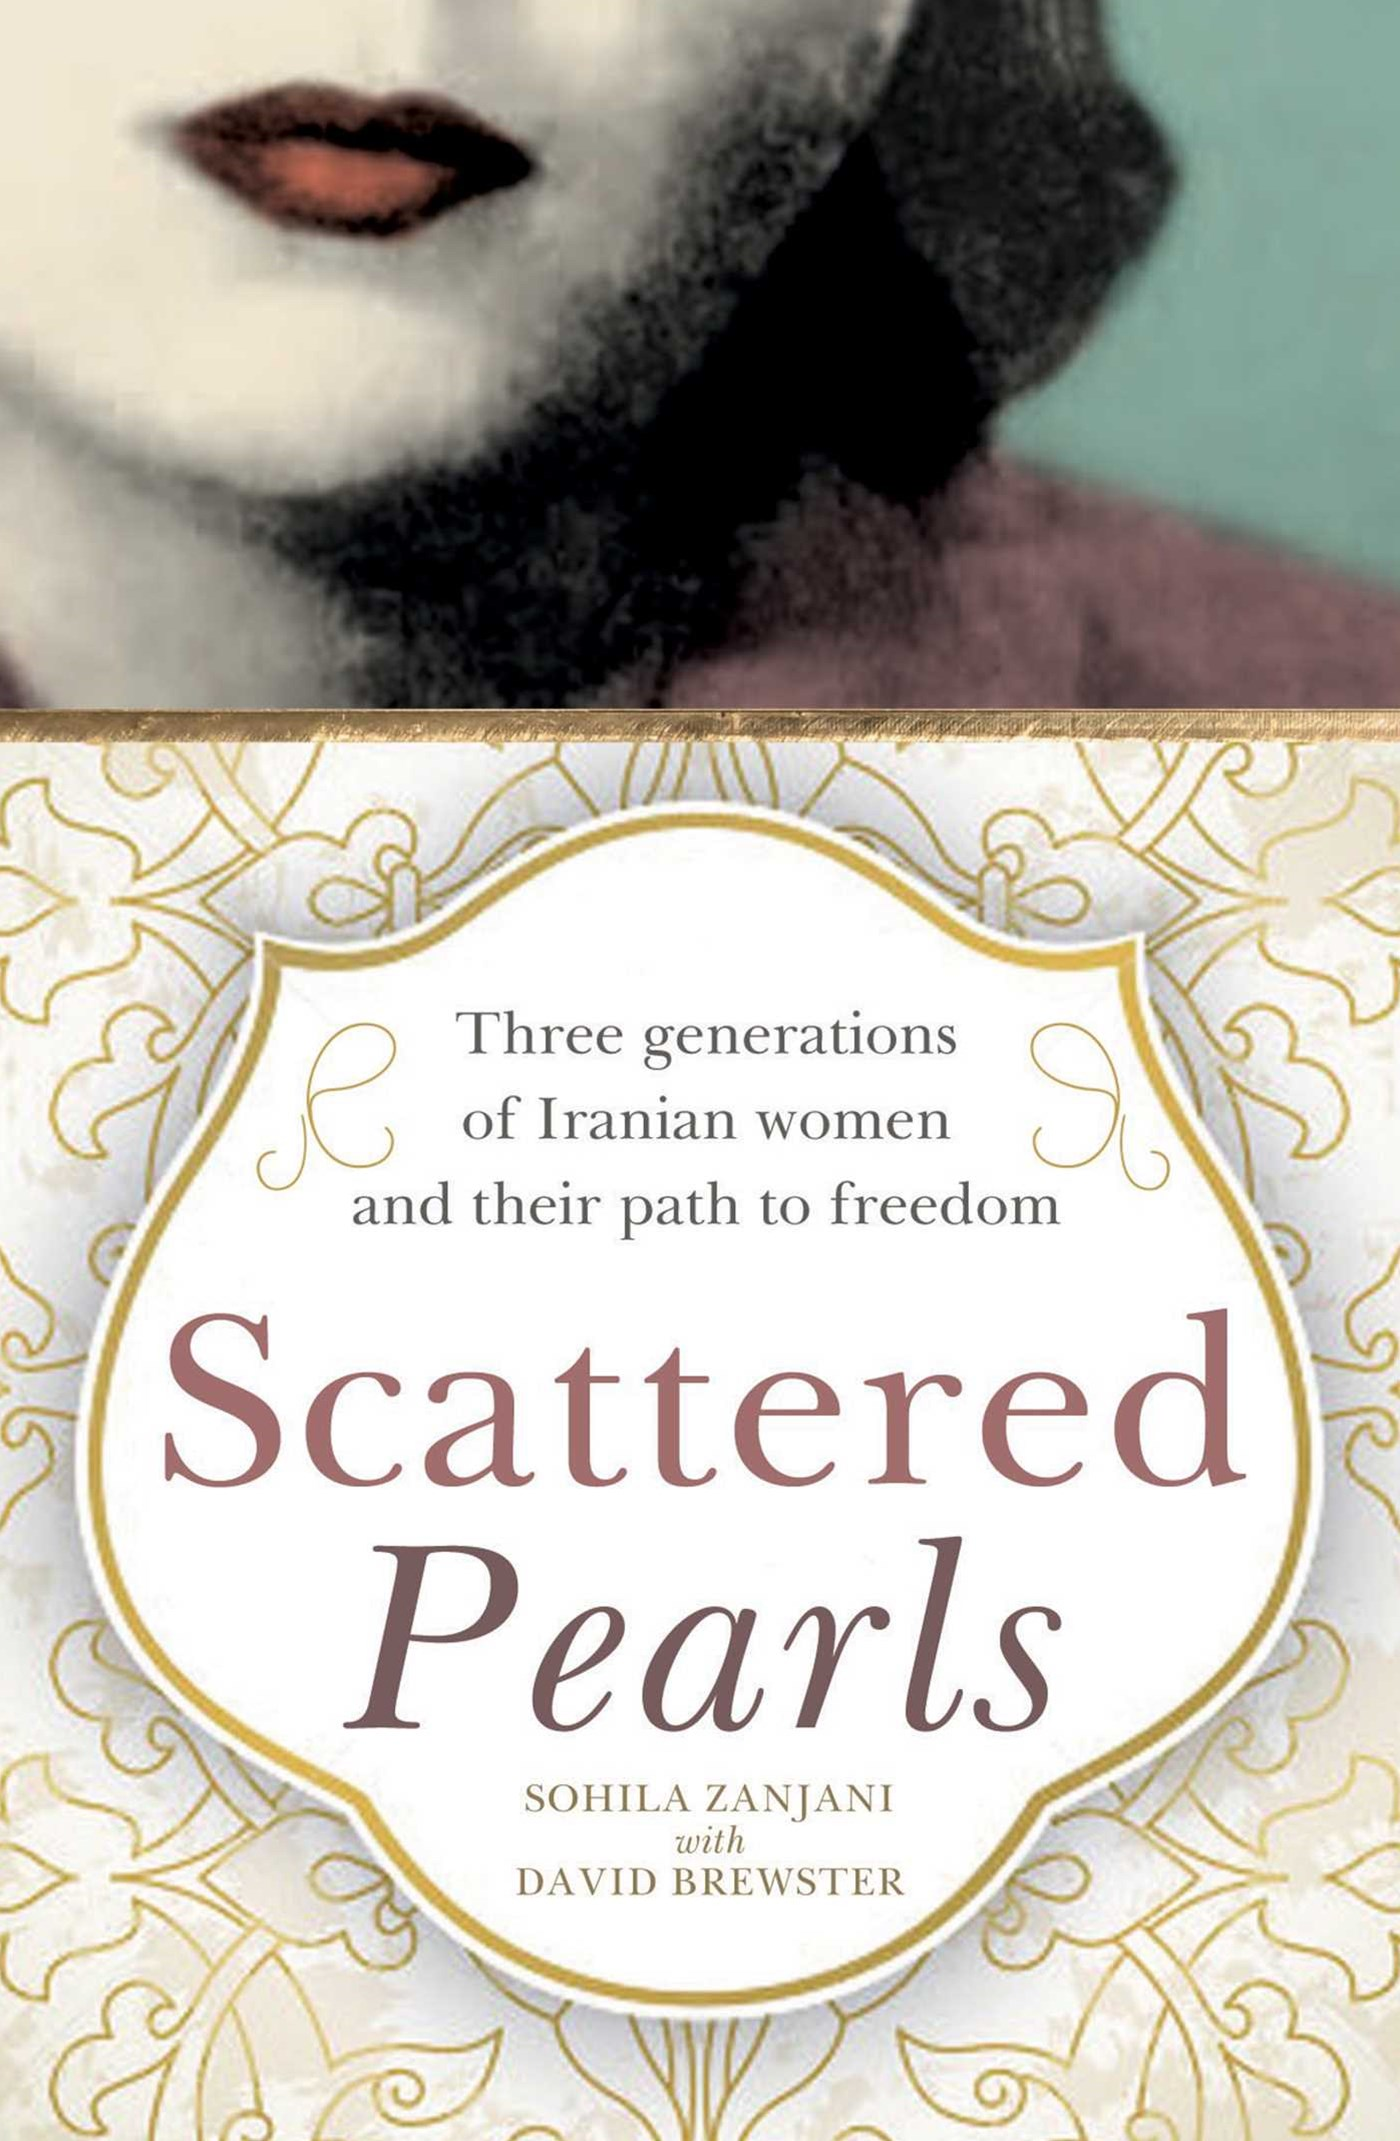 Scattered Pearls